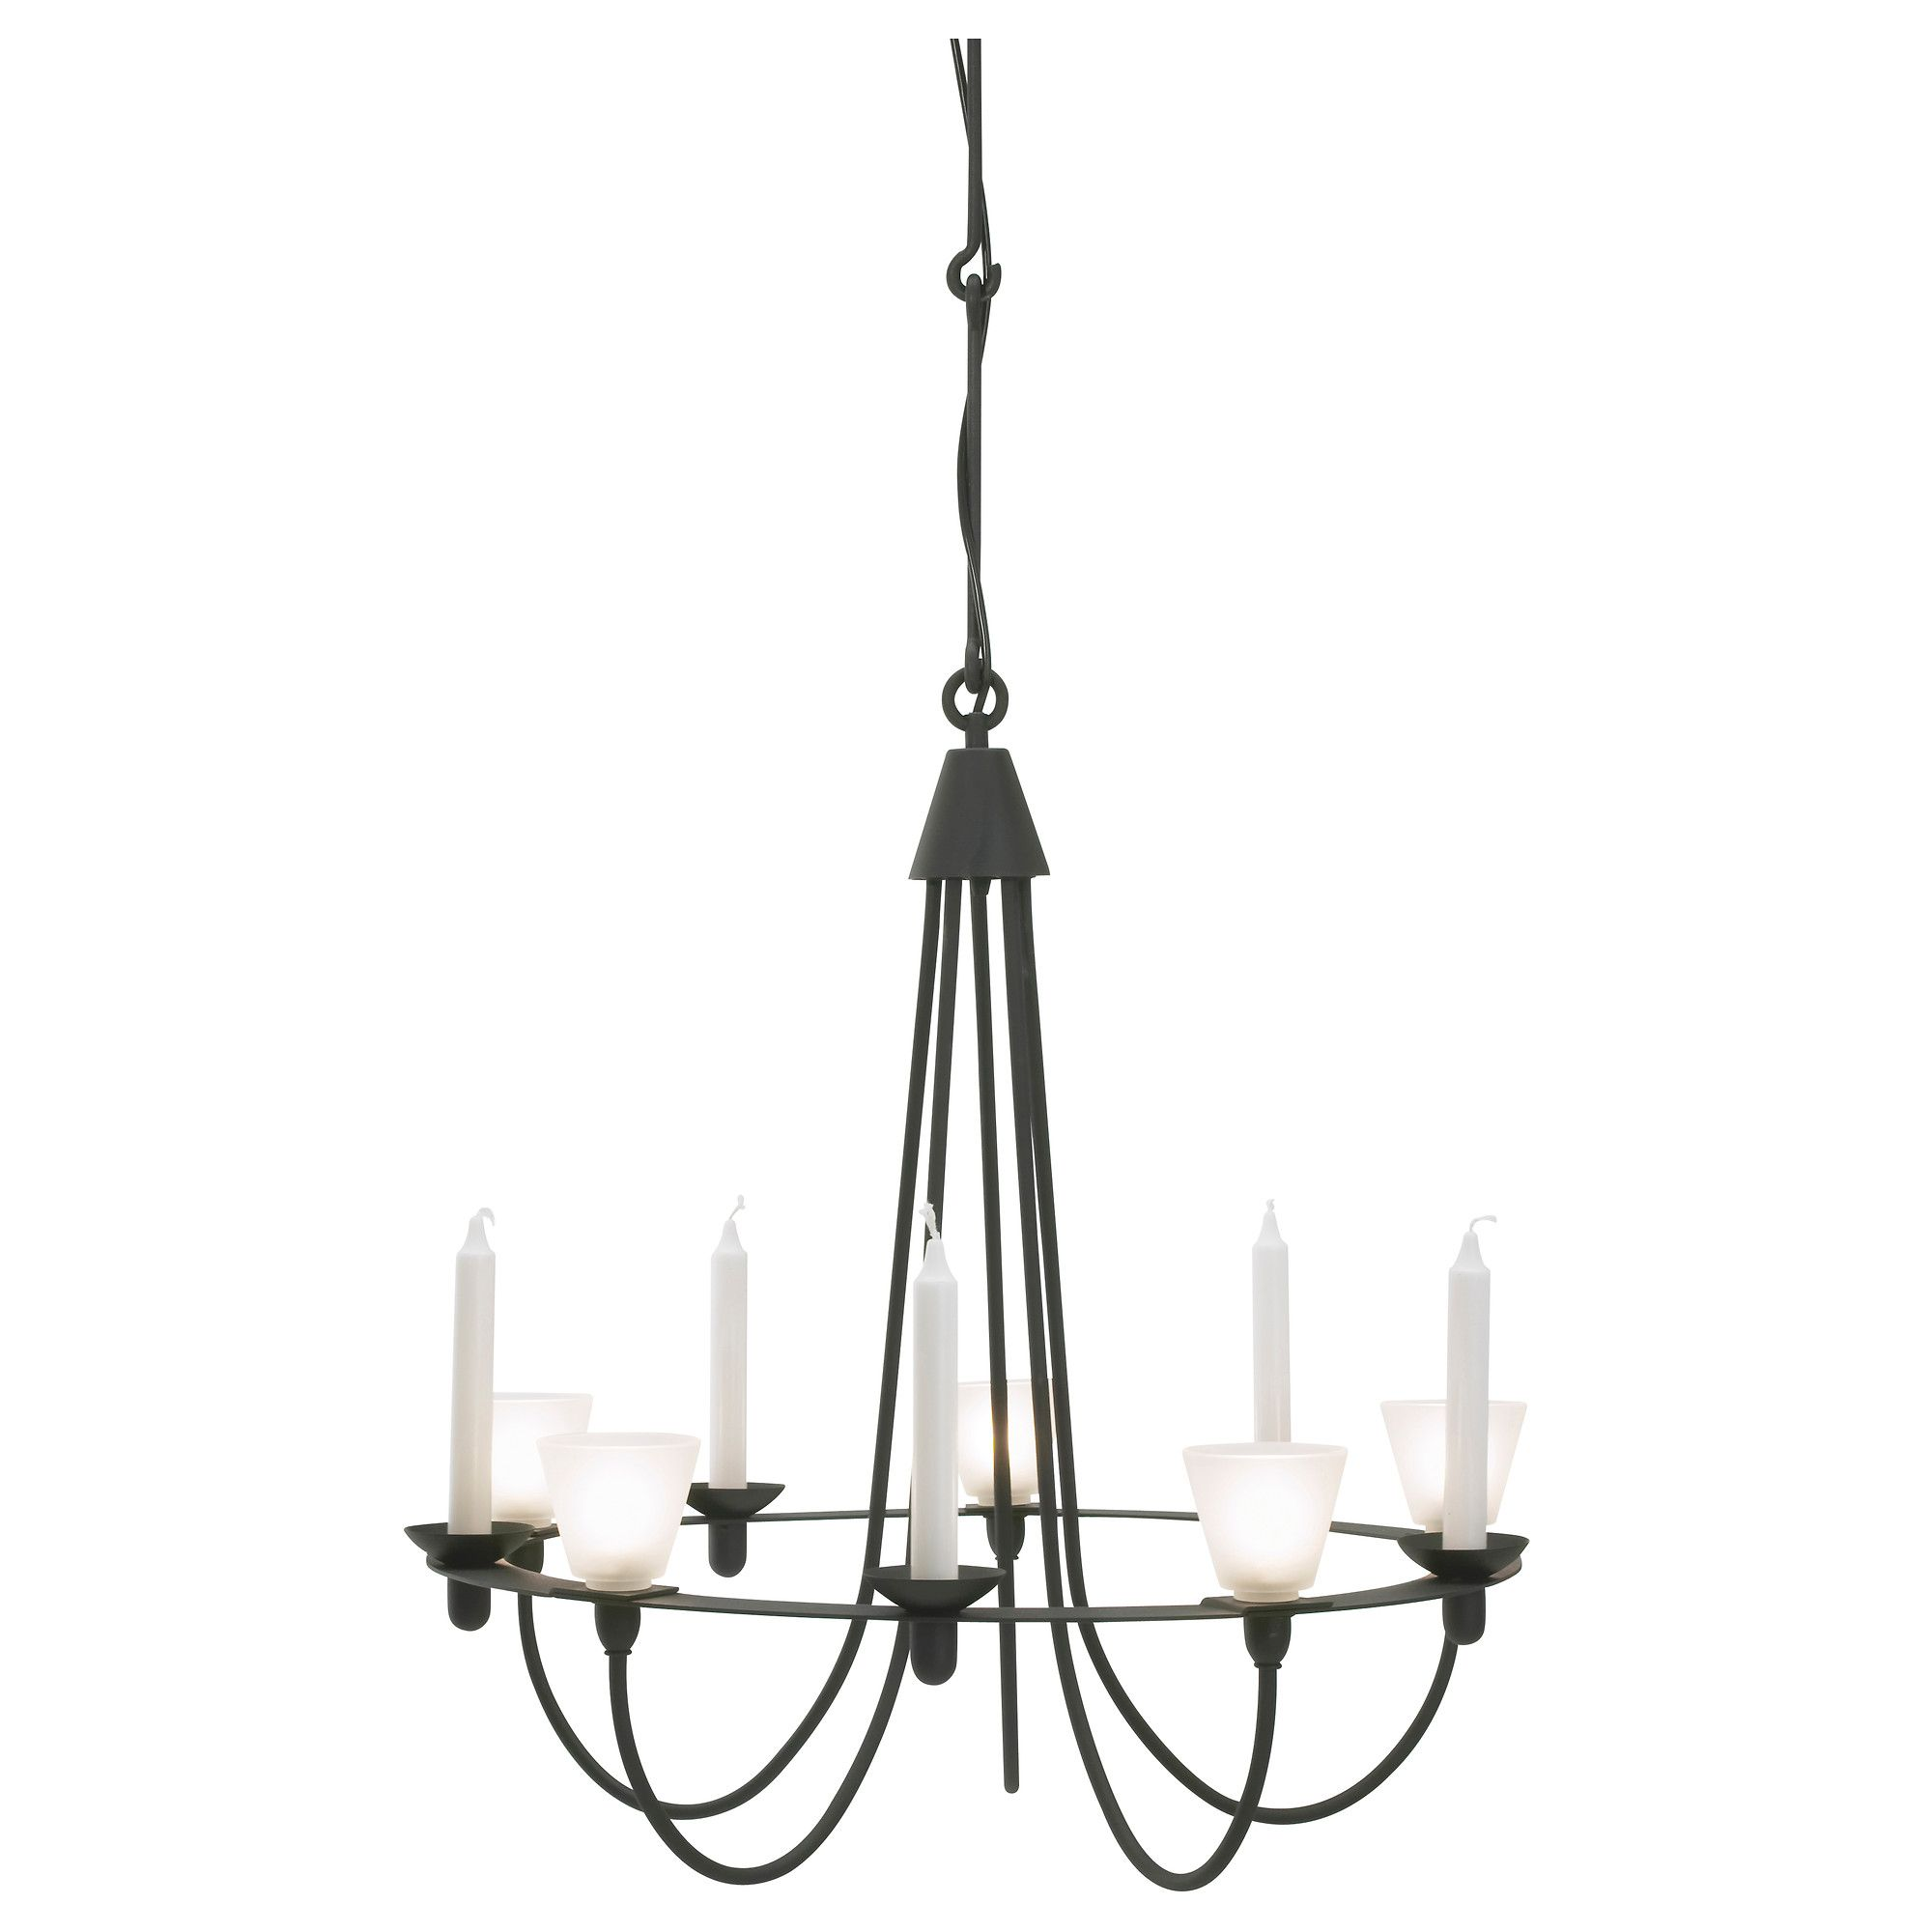 Ikea Chandelier Lerdal Chandelier - Ikea - Can Be Used With Both Electric